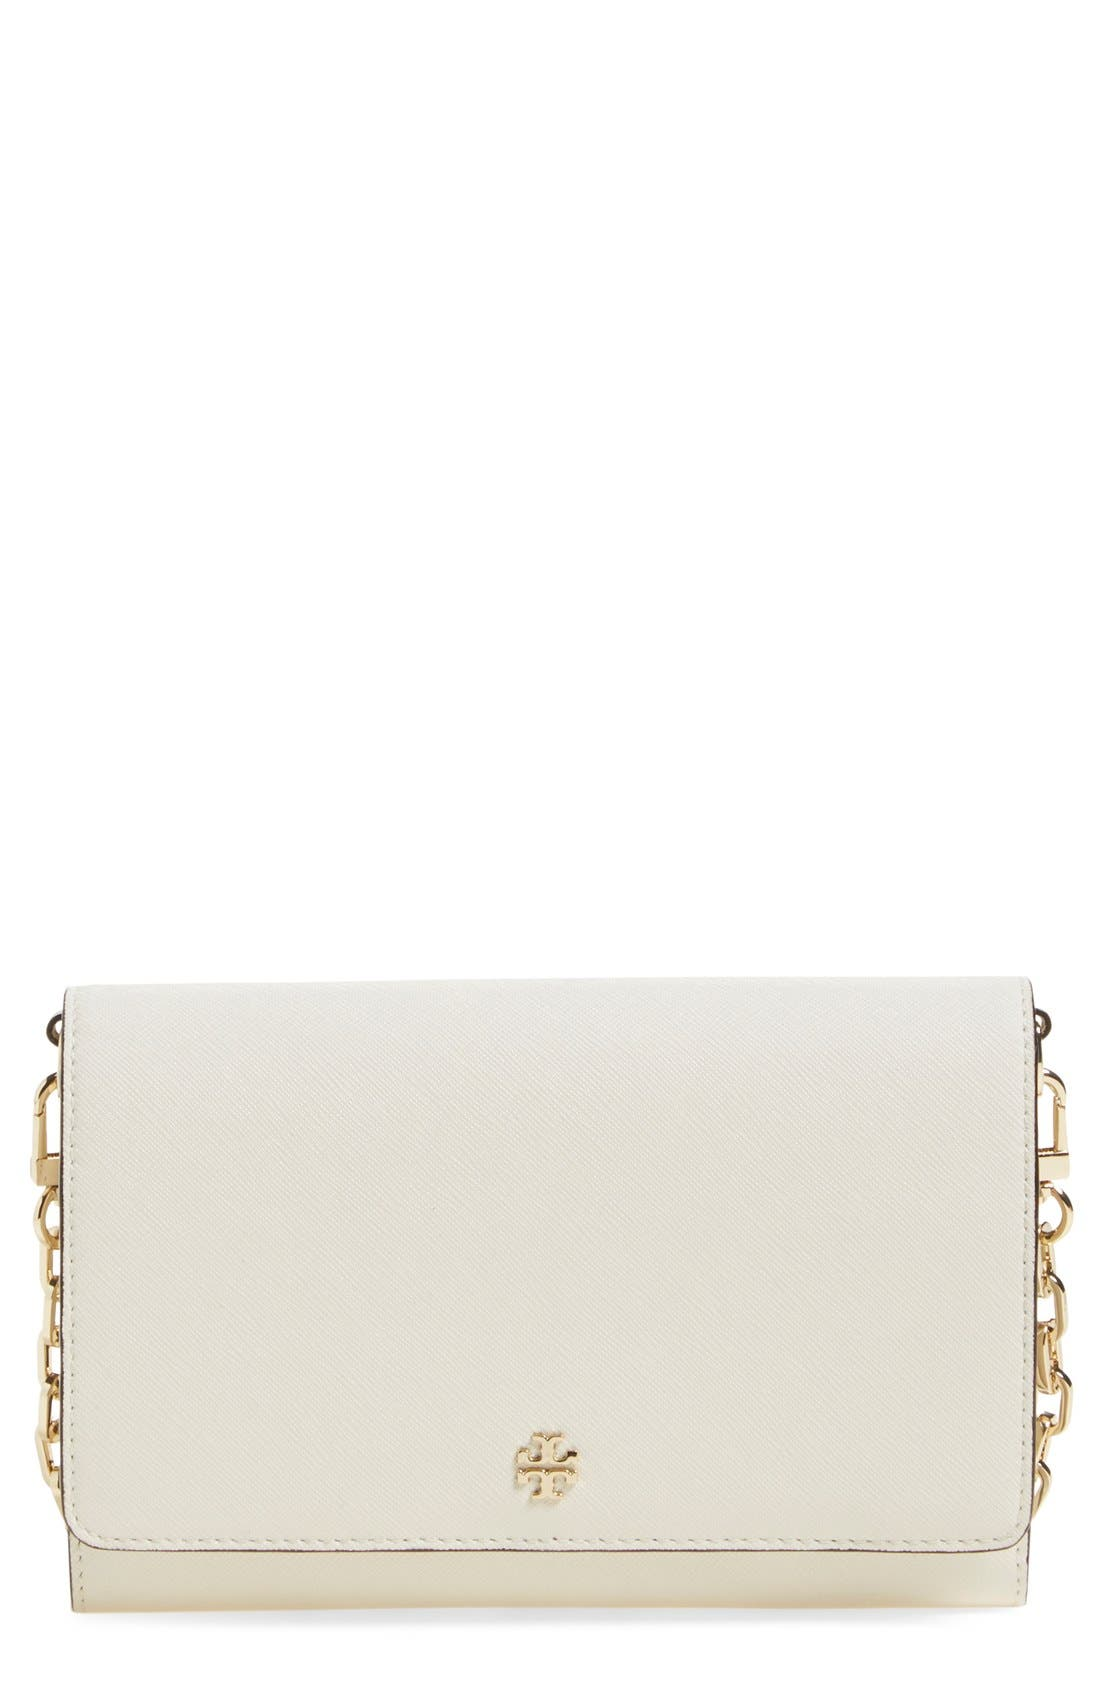 Alternate Image 1 Selected - Tory Burch 'Robinson' Leather Wallet on a Chain